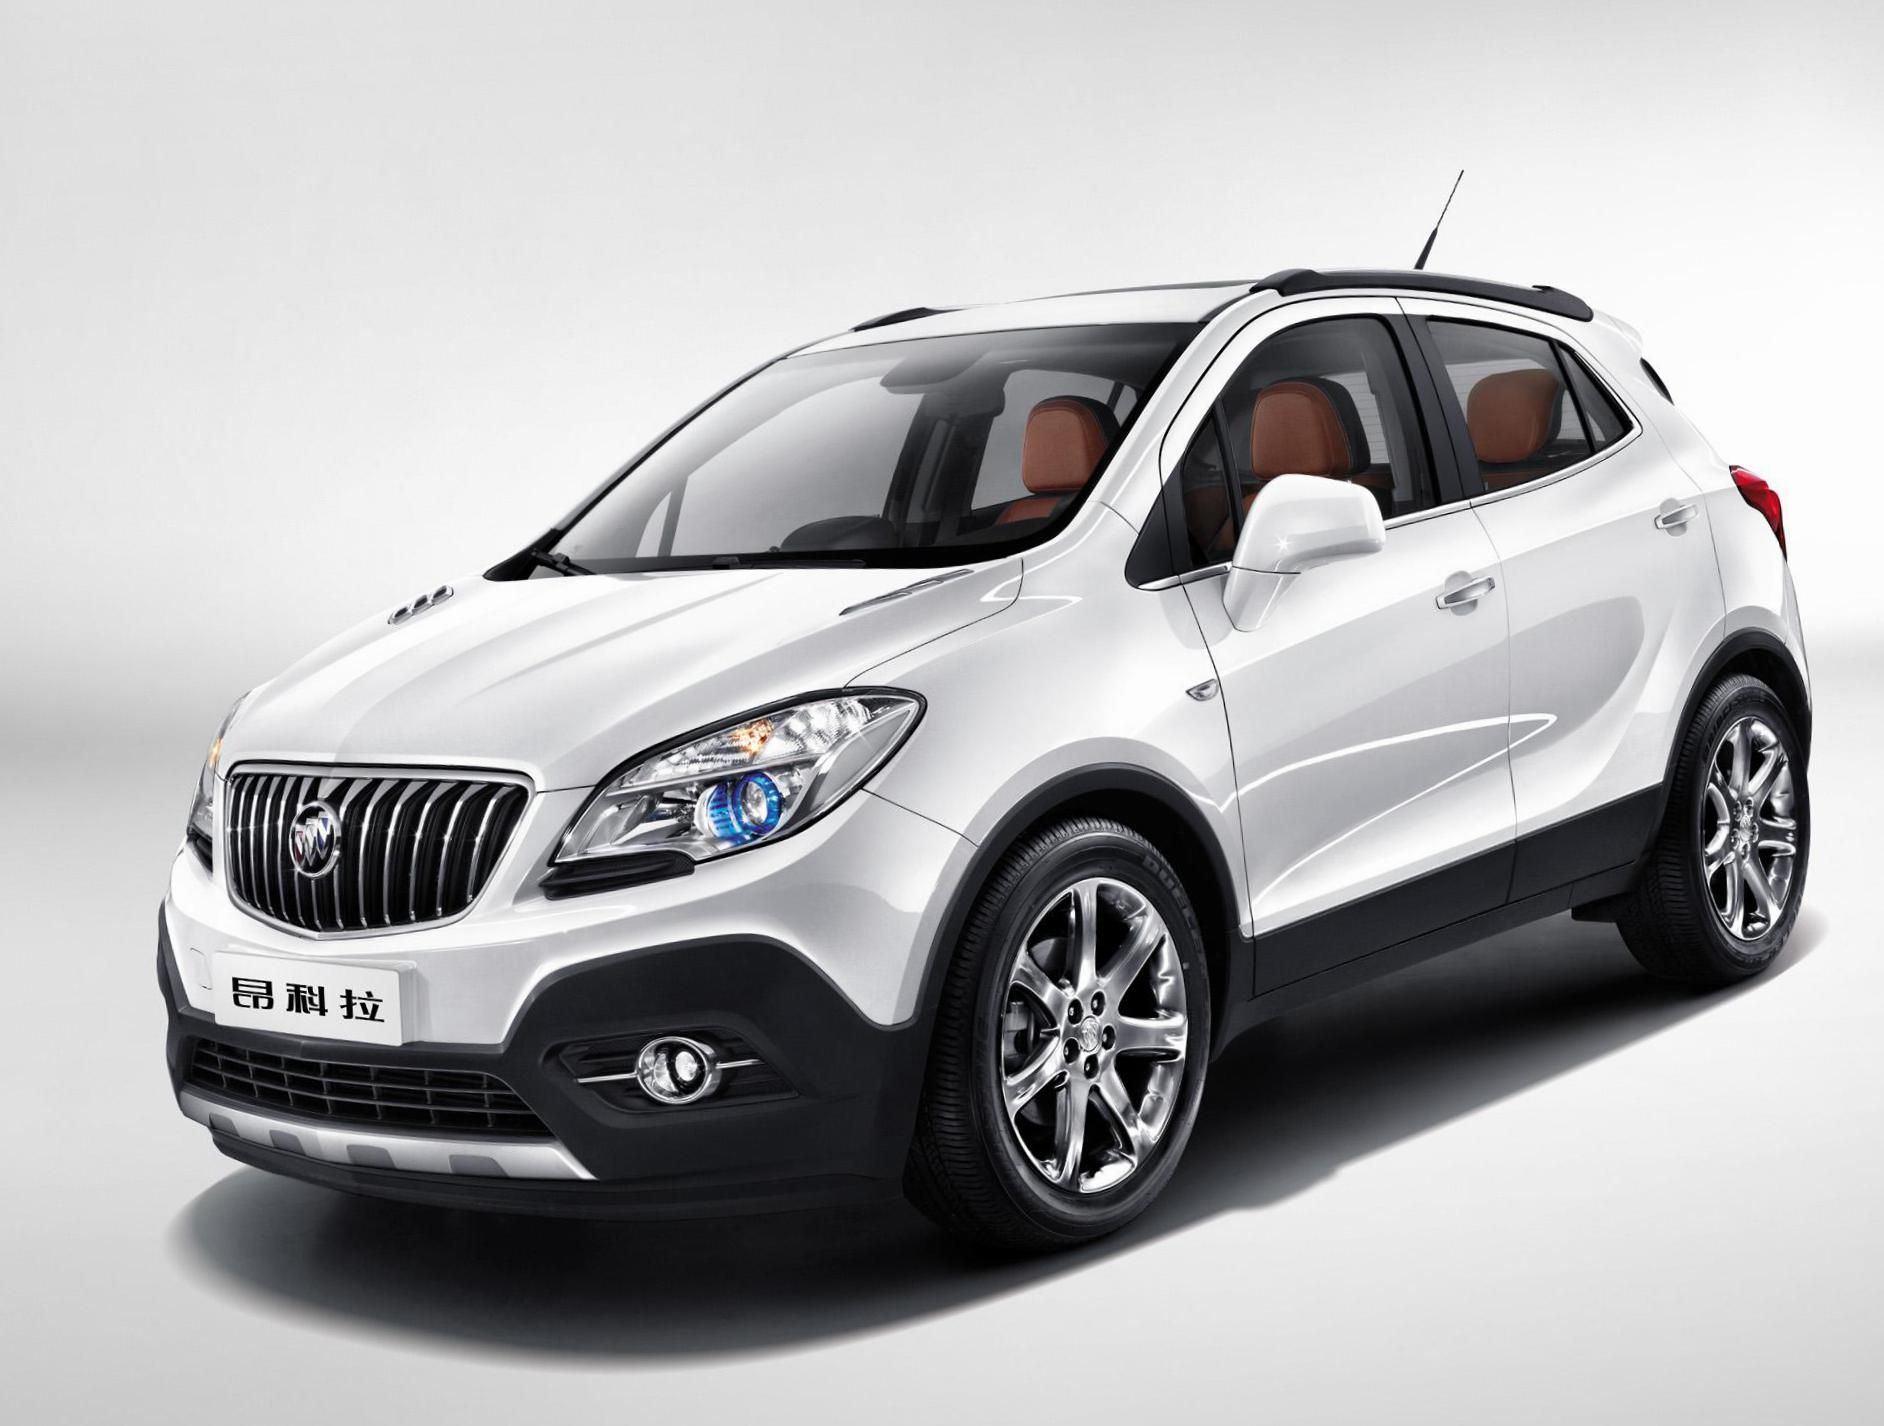 Buick Encore Photos And Specs Photo Buick Encore Prices And 25 Perfect Photos Of Buick Encore Buick Encore Buick New Cars